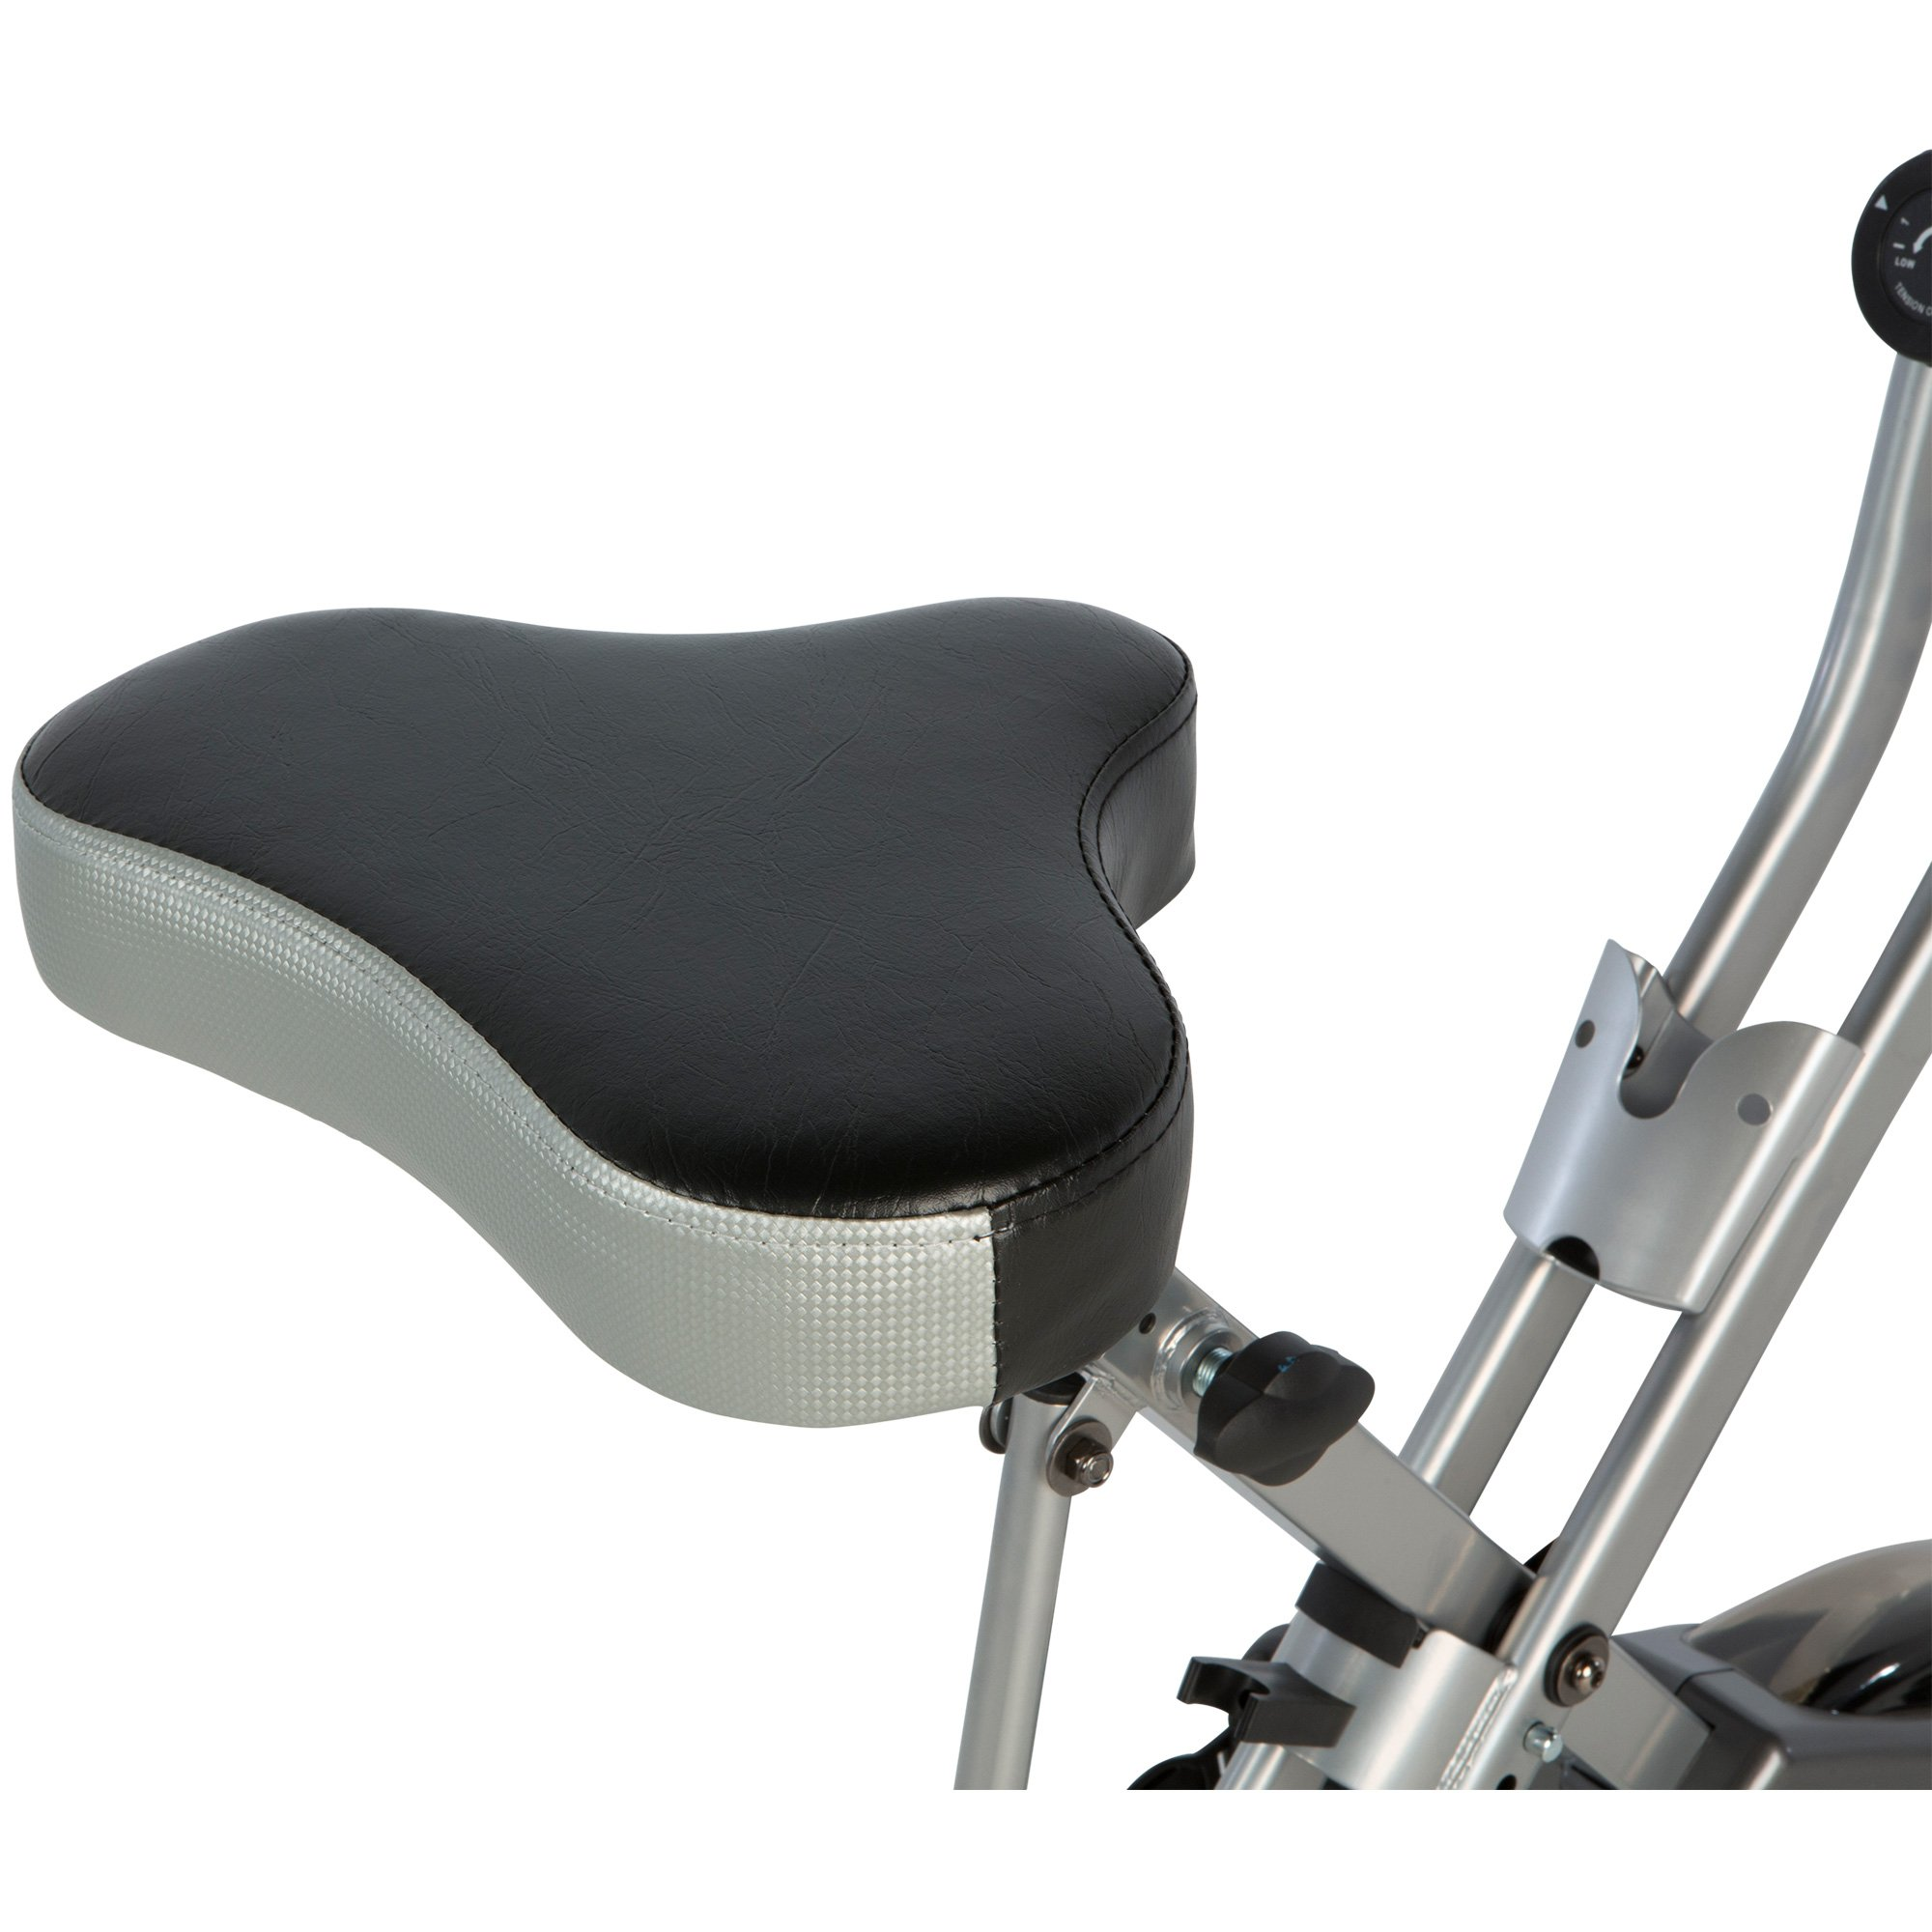 Exerpeutic Folding Magnetic Upright Exercise Bike with 300 lbs Weight Capacity by Exerpeutic (Image #7)